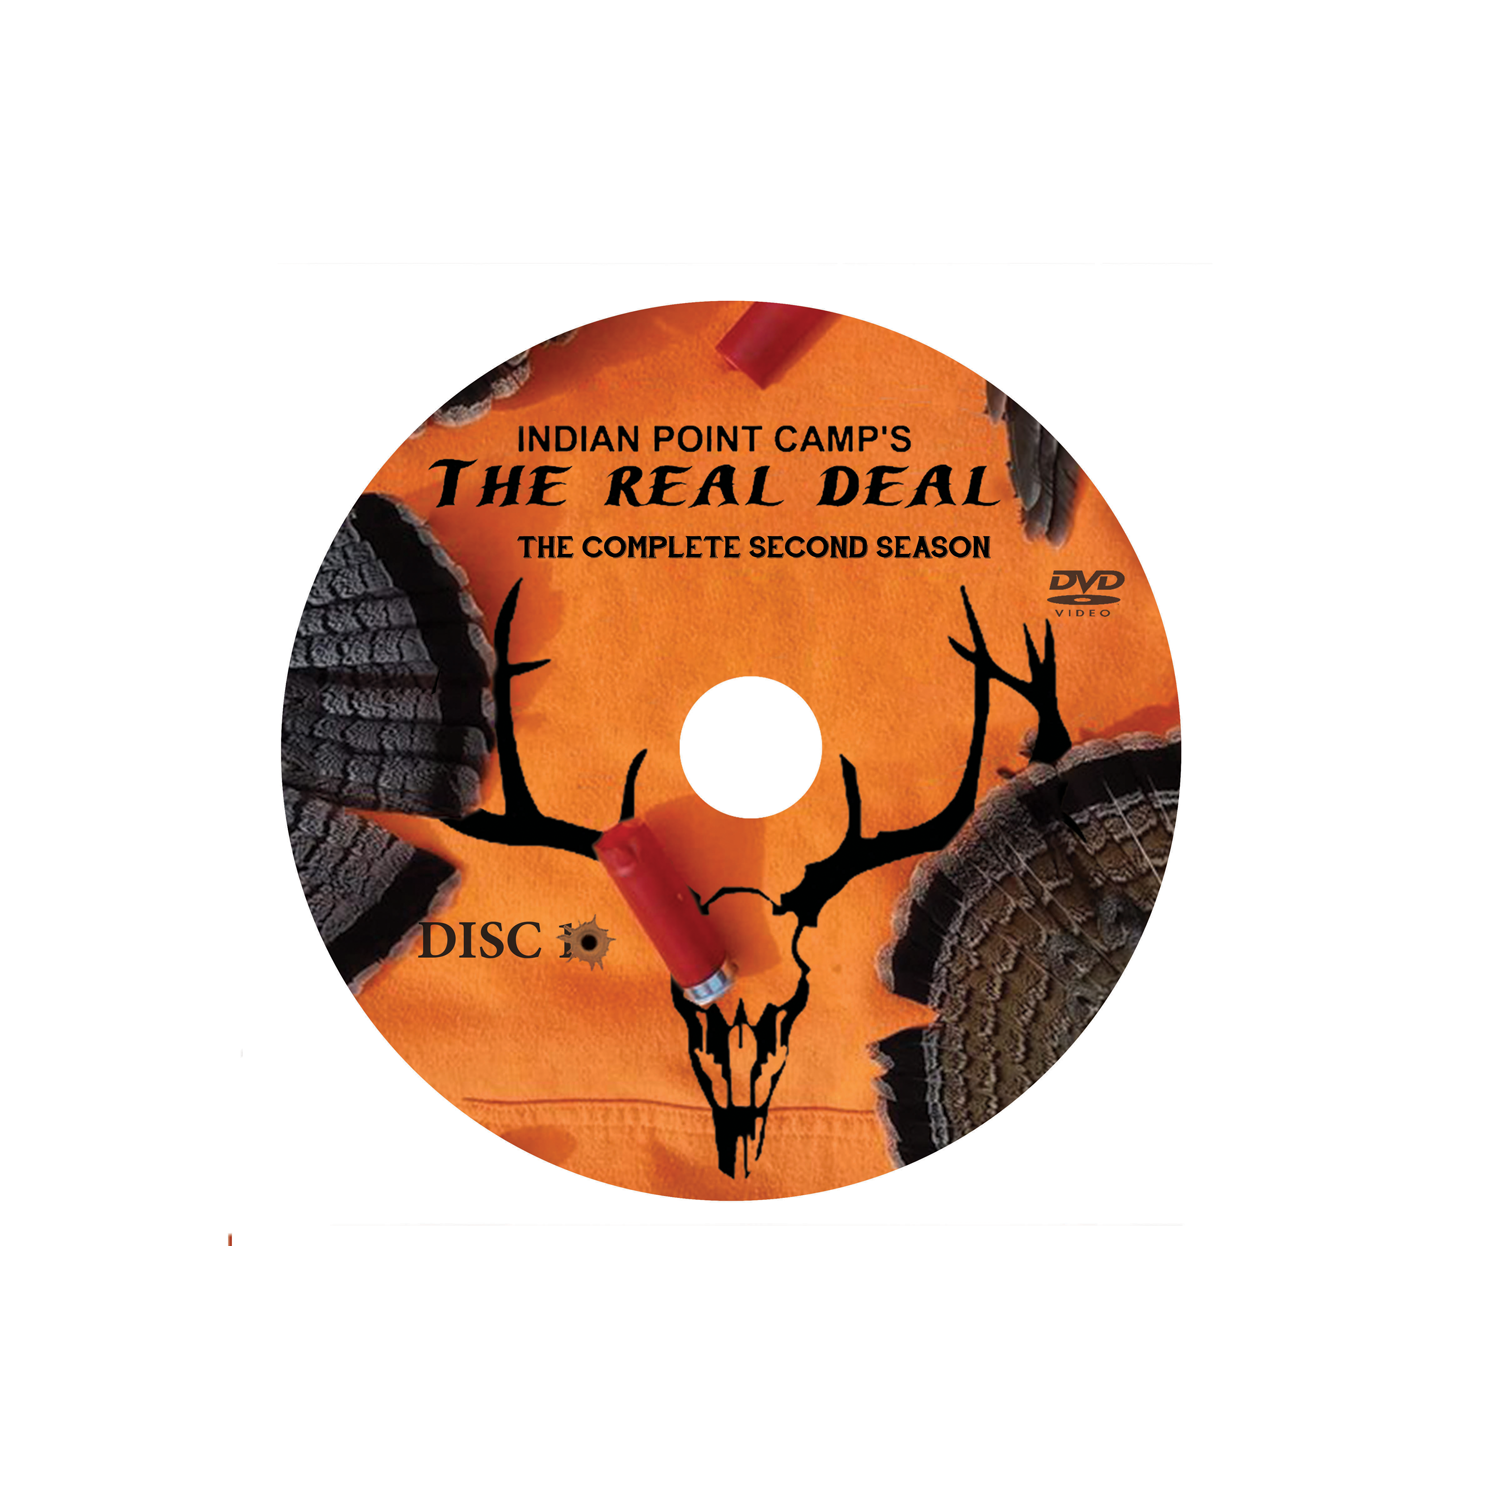 Indian Point Camps - The Real Deal - Complete 2nd Season